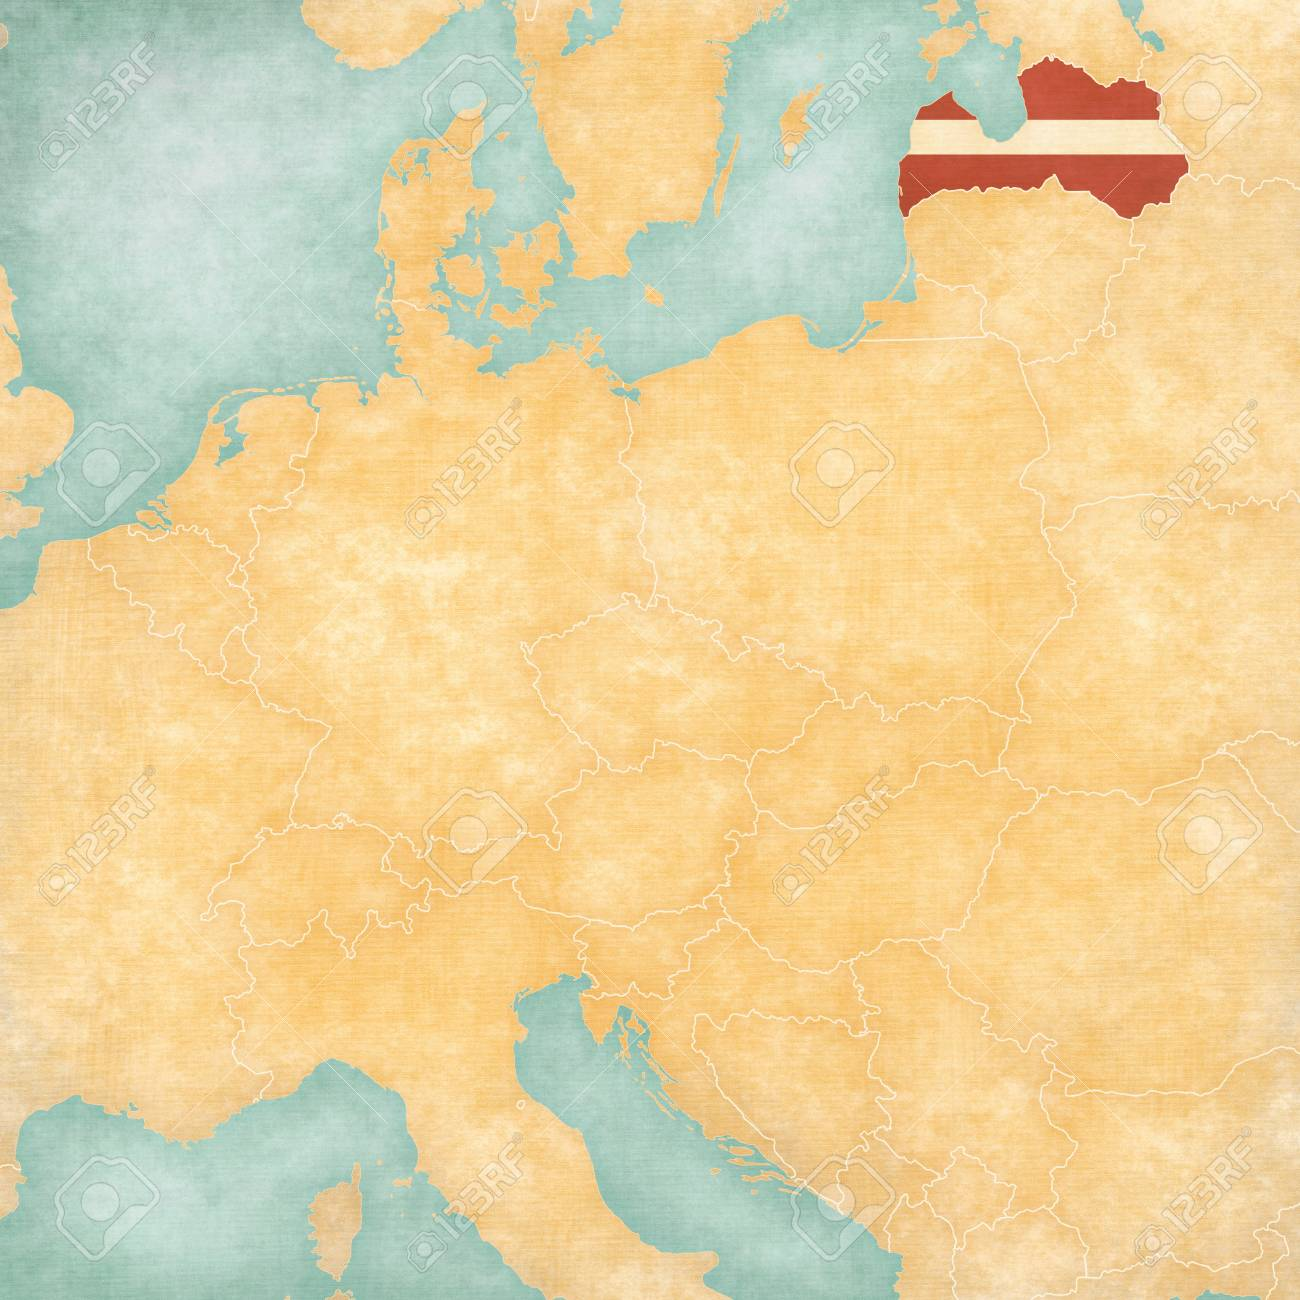 Latvia (Latvian Flag) On ??the Map Of Central Europe In Soft Grunge ...